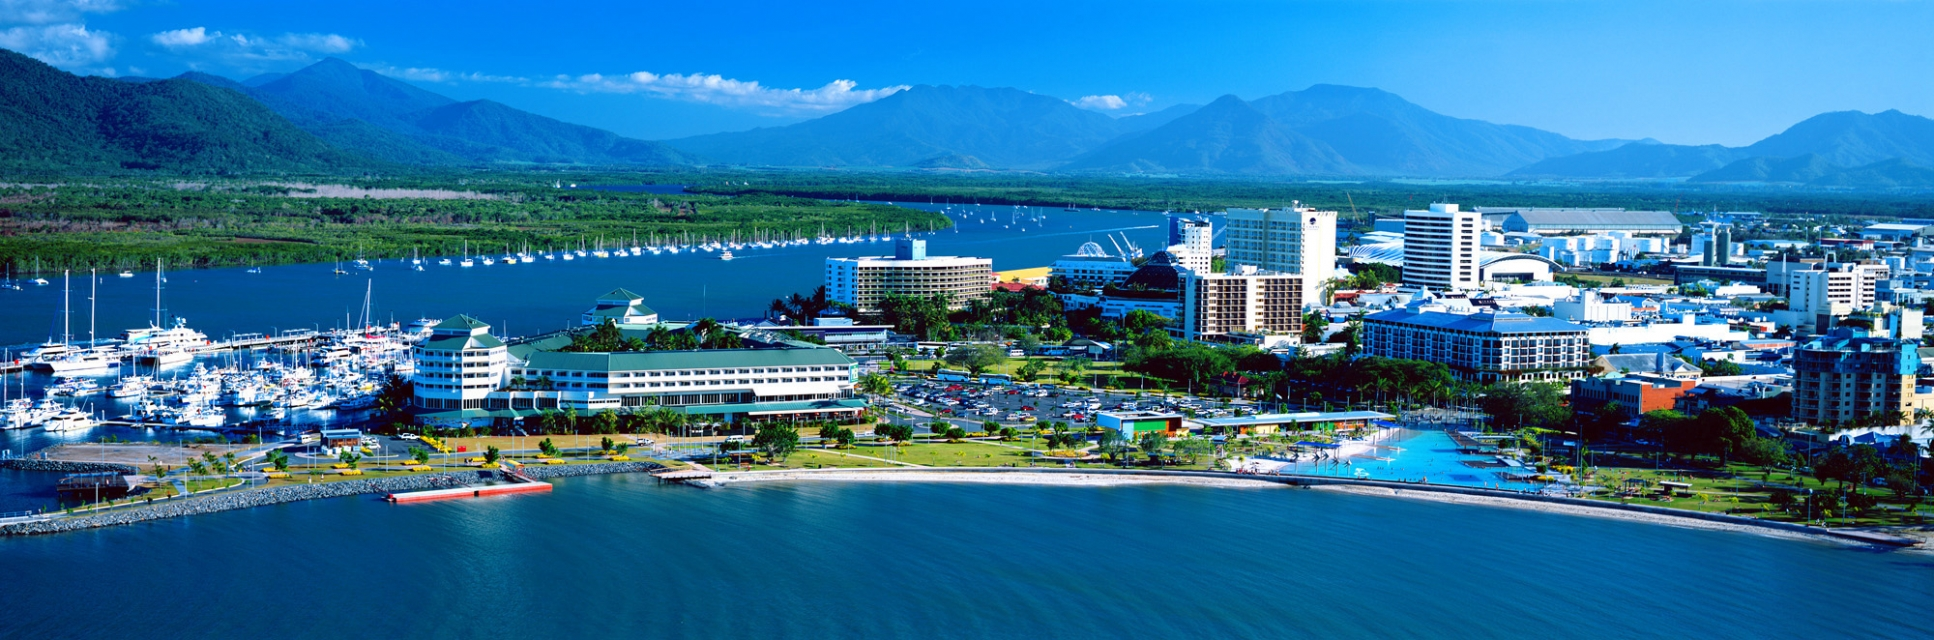 City of Cairns